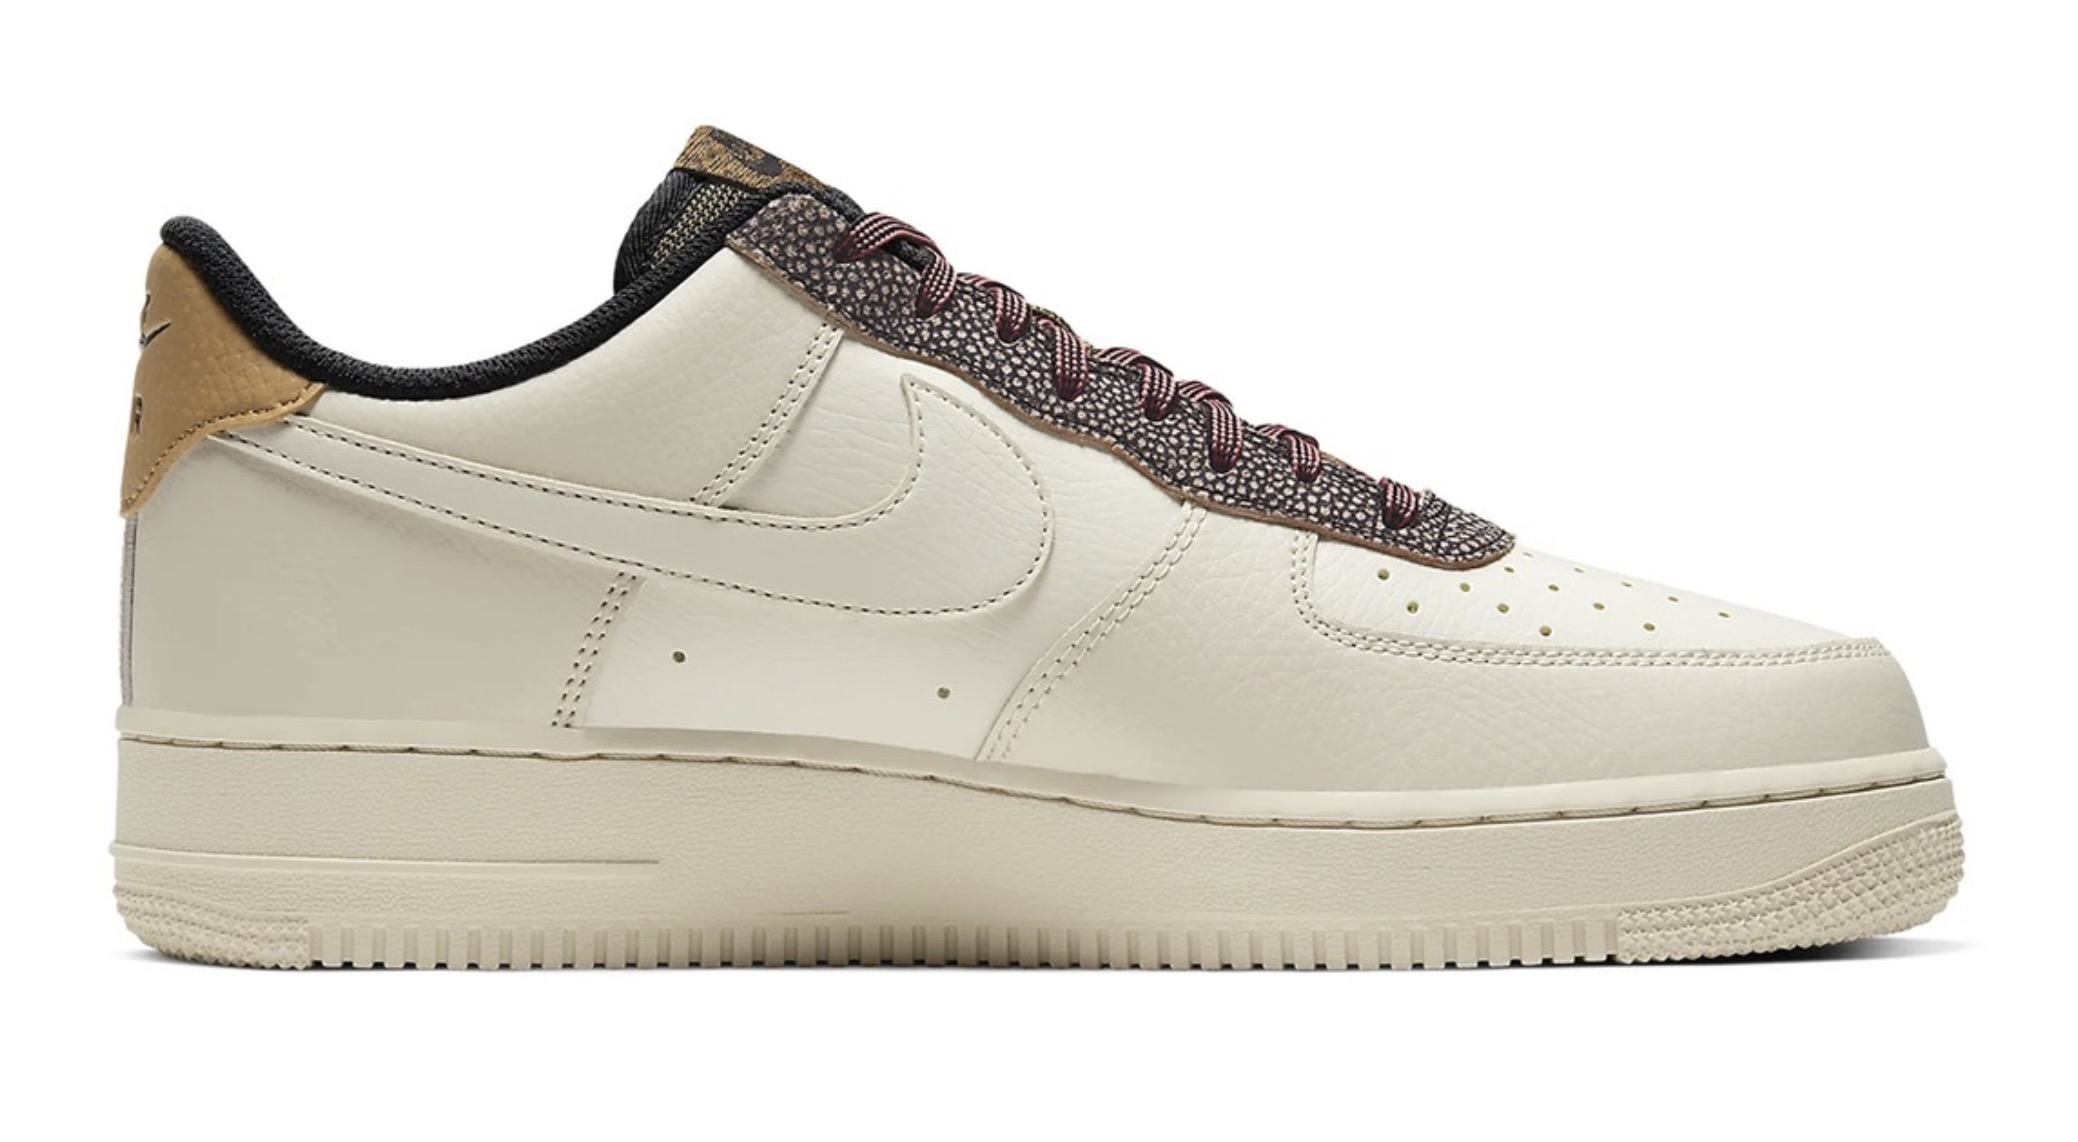 """Nike's Air Force 1 07 in """"Fossil:Wheat:Shimmer"""" 5 right"""